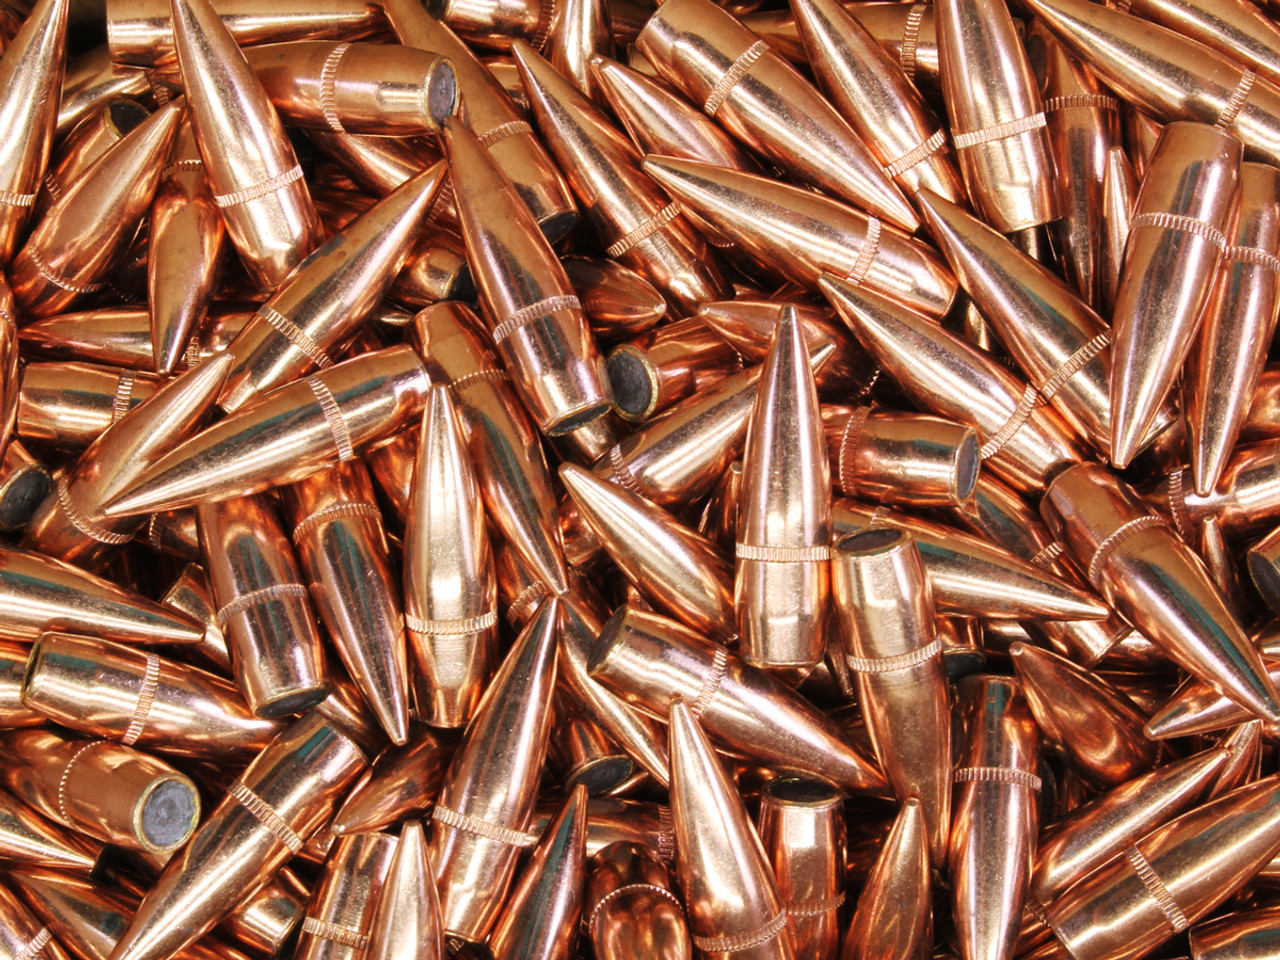 Jacketed Bullets